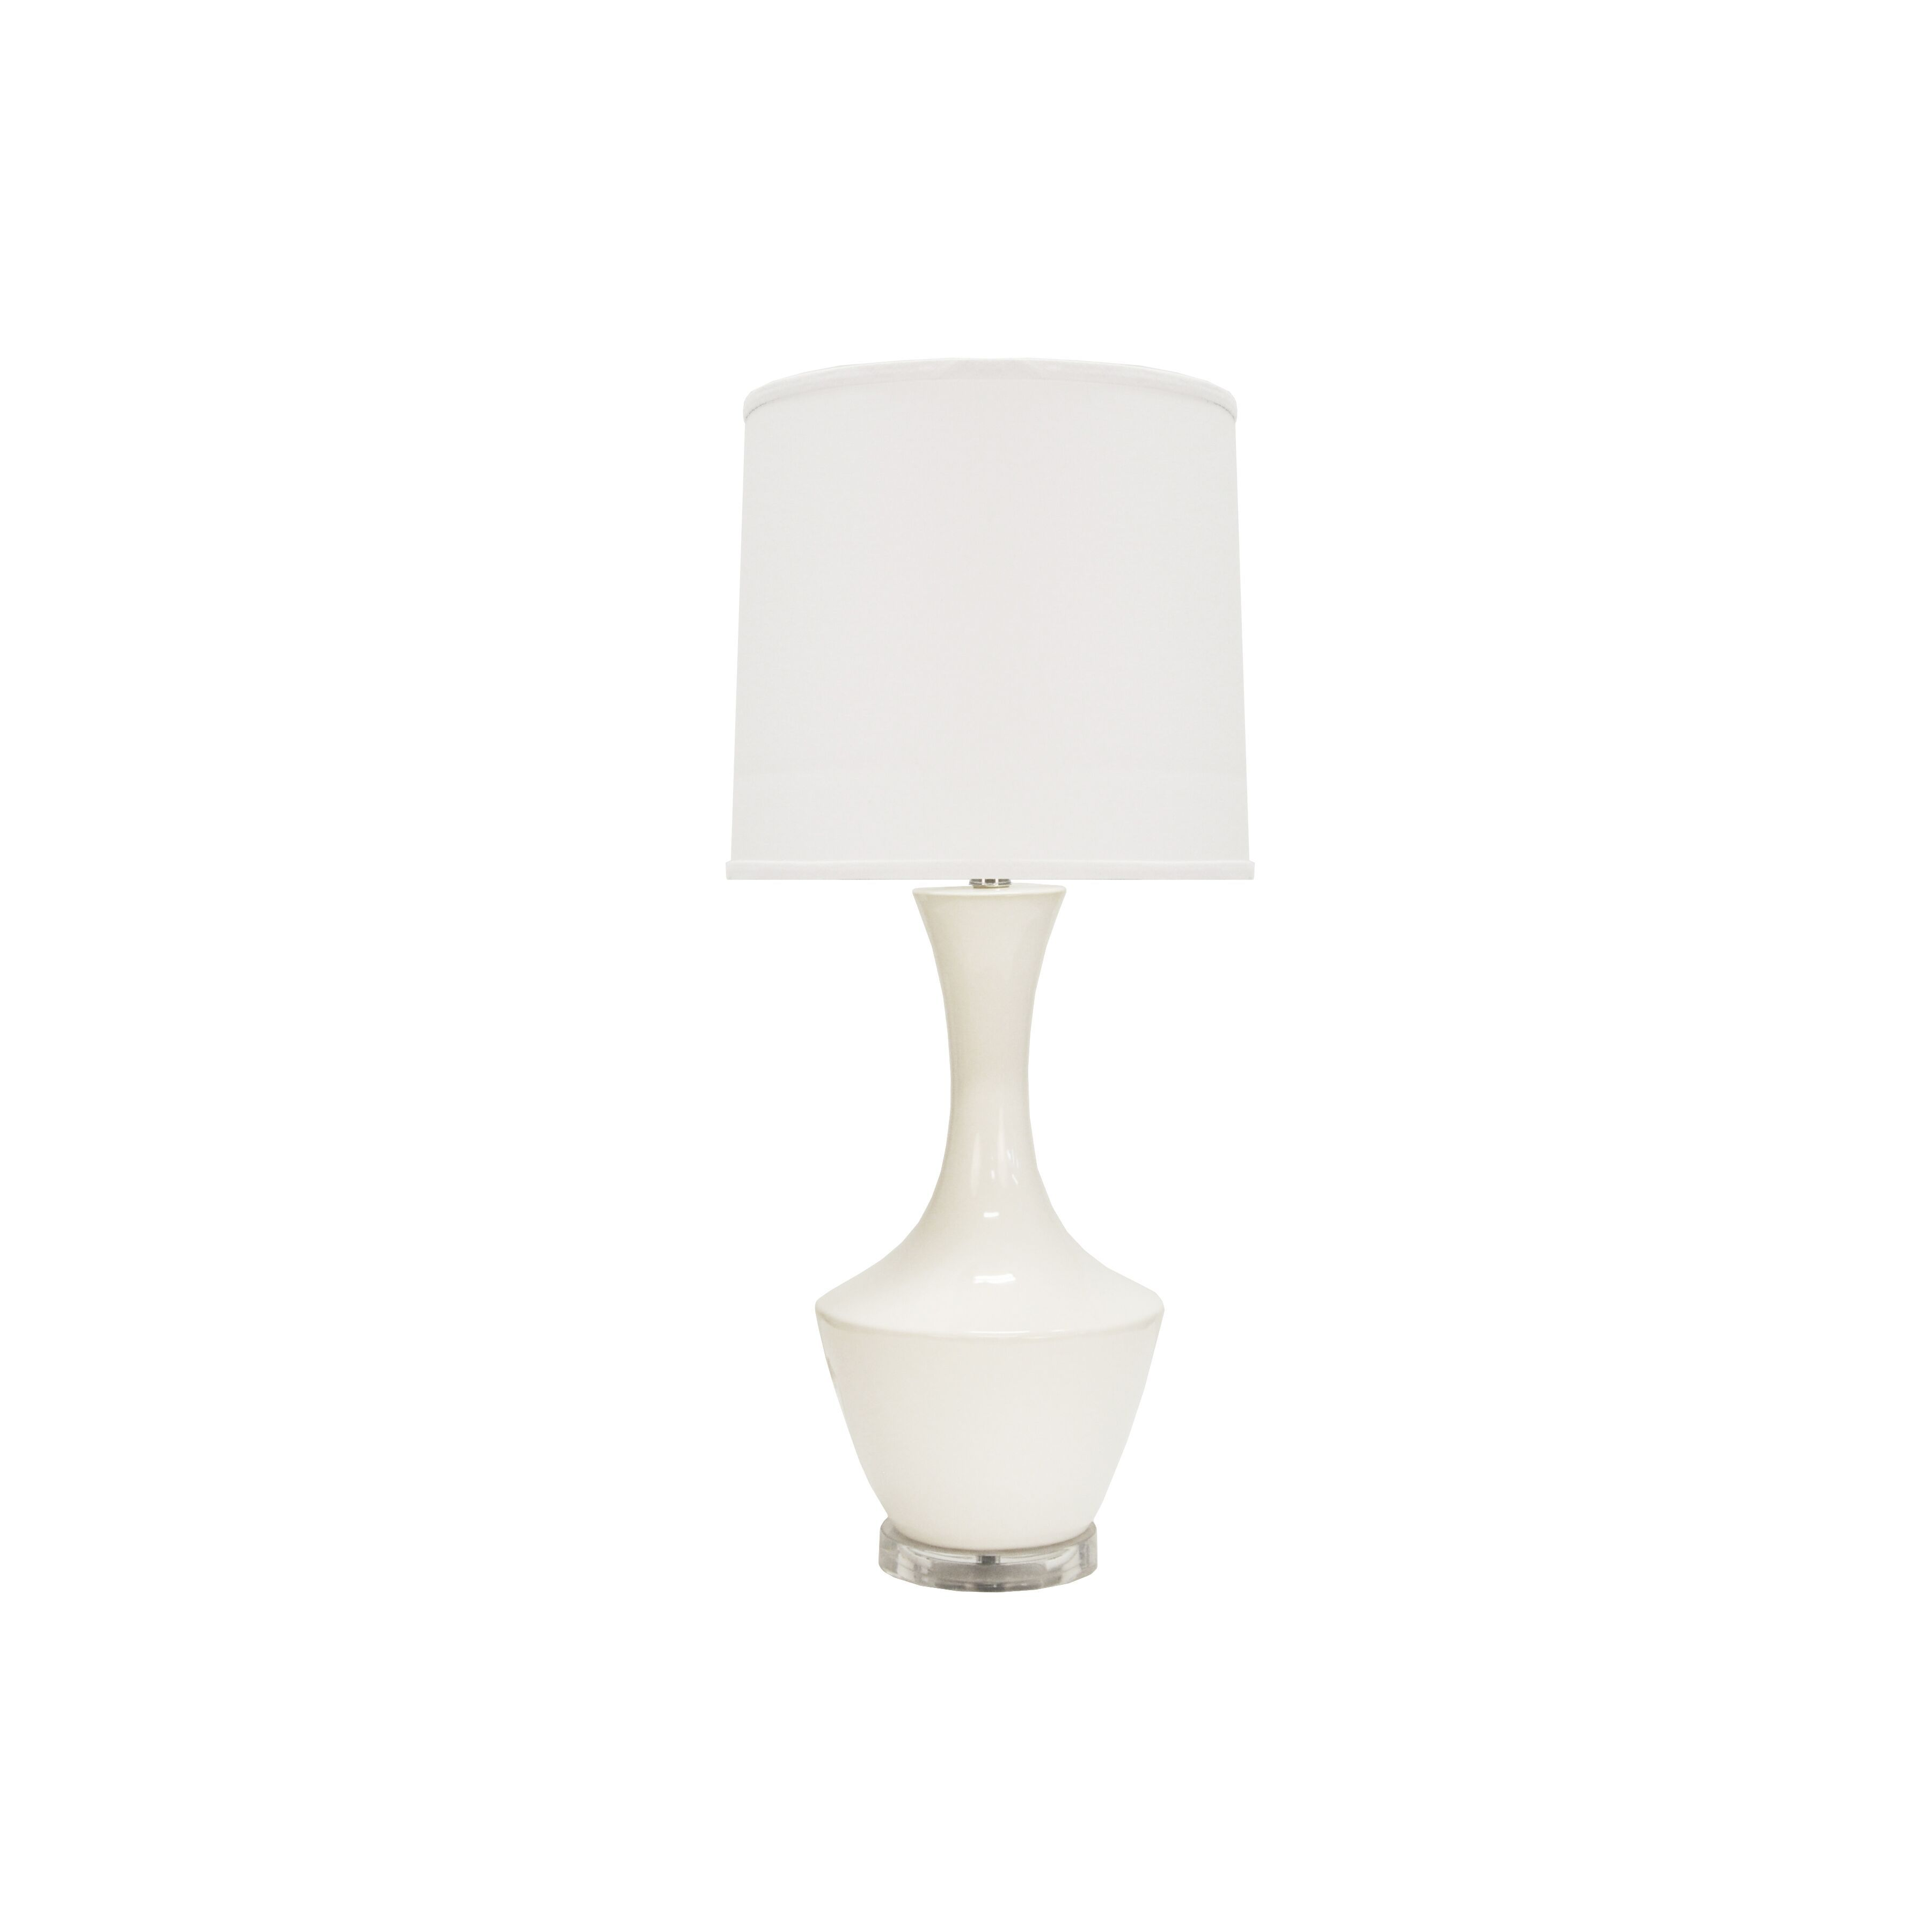 Bridget White Ceramic Table Lamp by Worlds Away